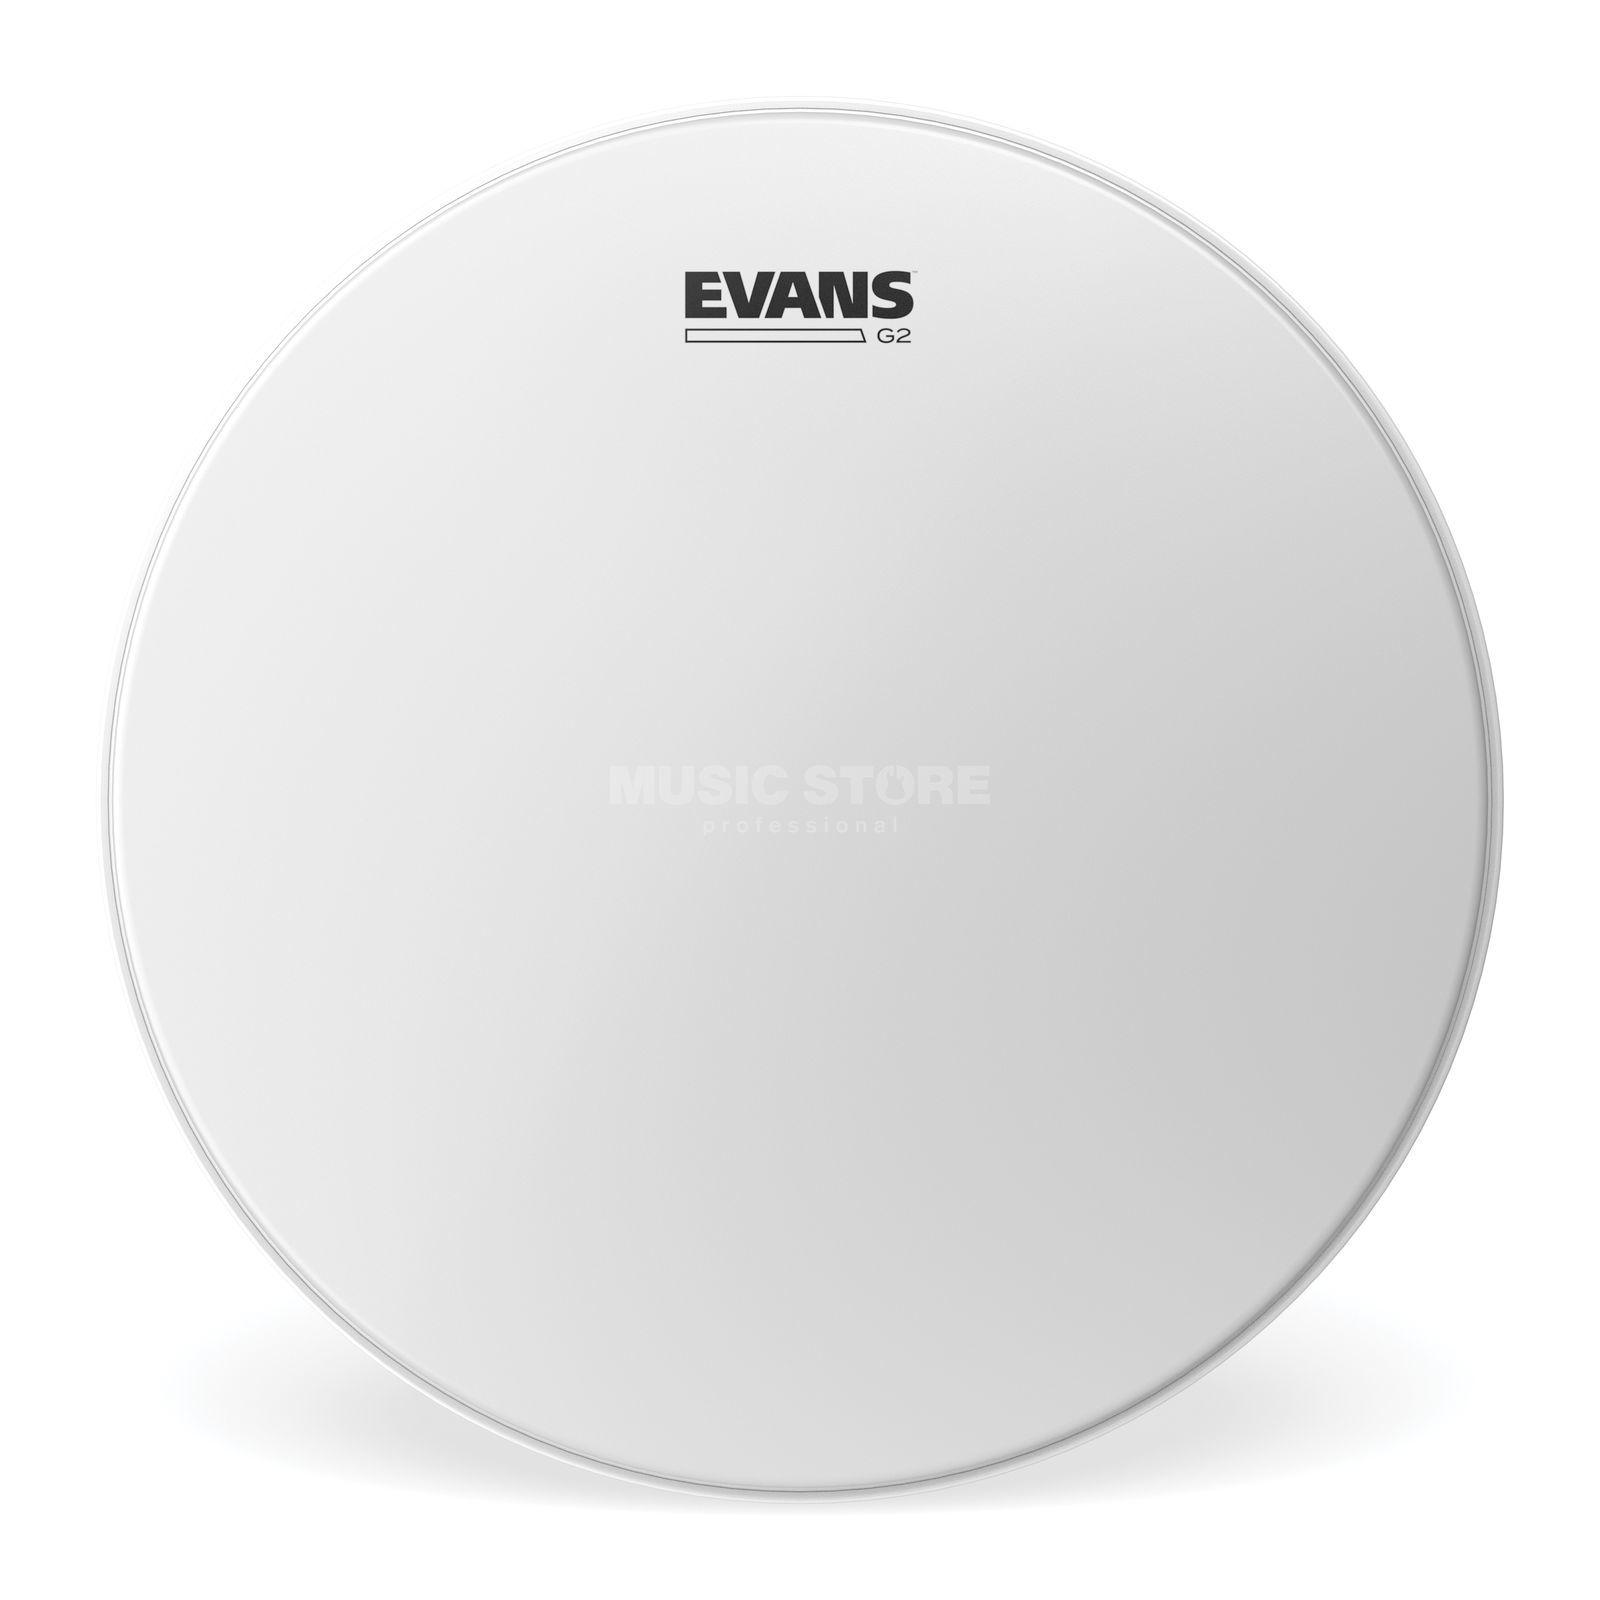 "Evans G2 Coated 10"", B10G2, Tom Batter Product Image"